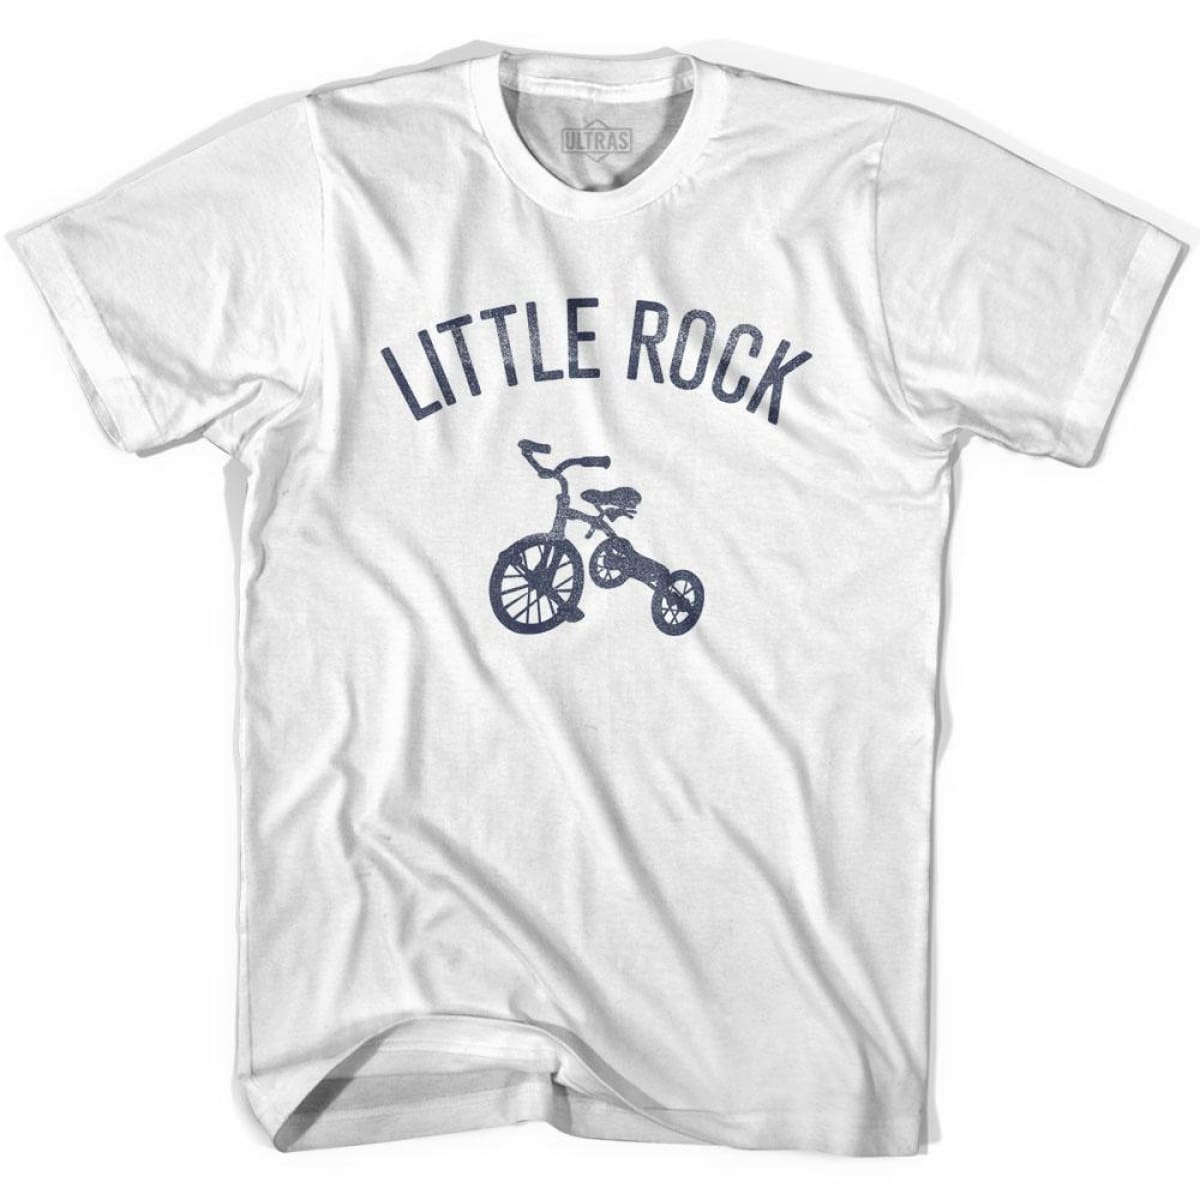 Little Rock City Tricycle Womens Cotton T-shirt - Tricycle City